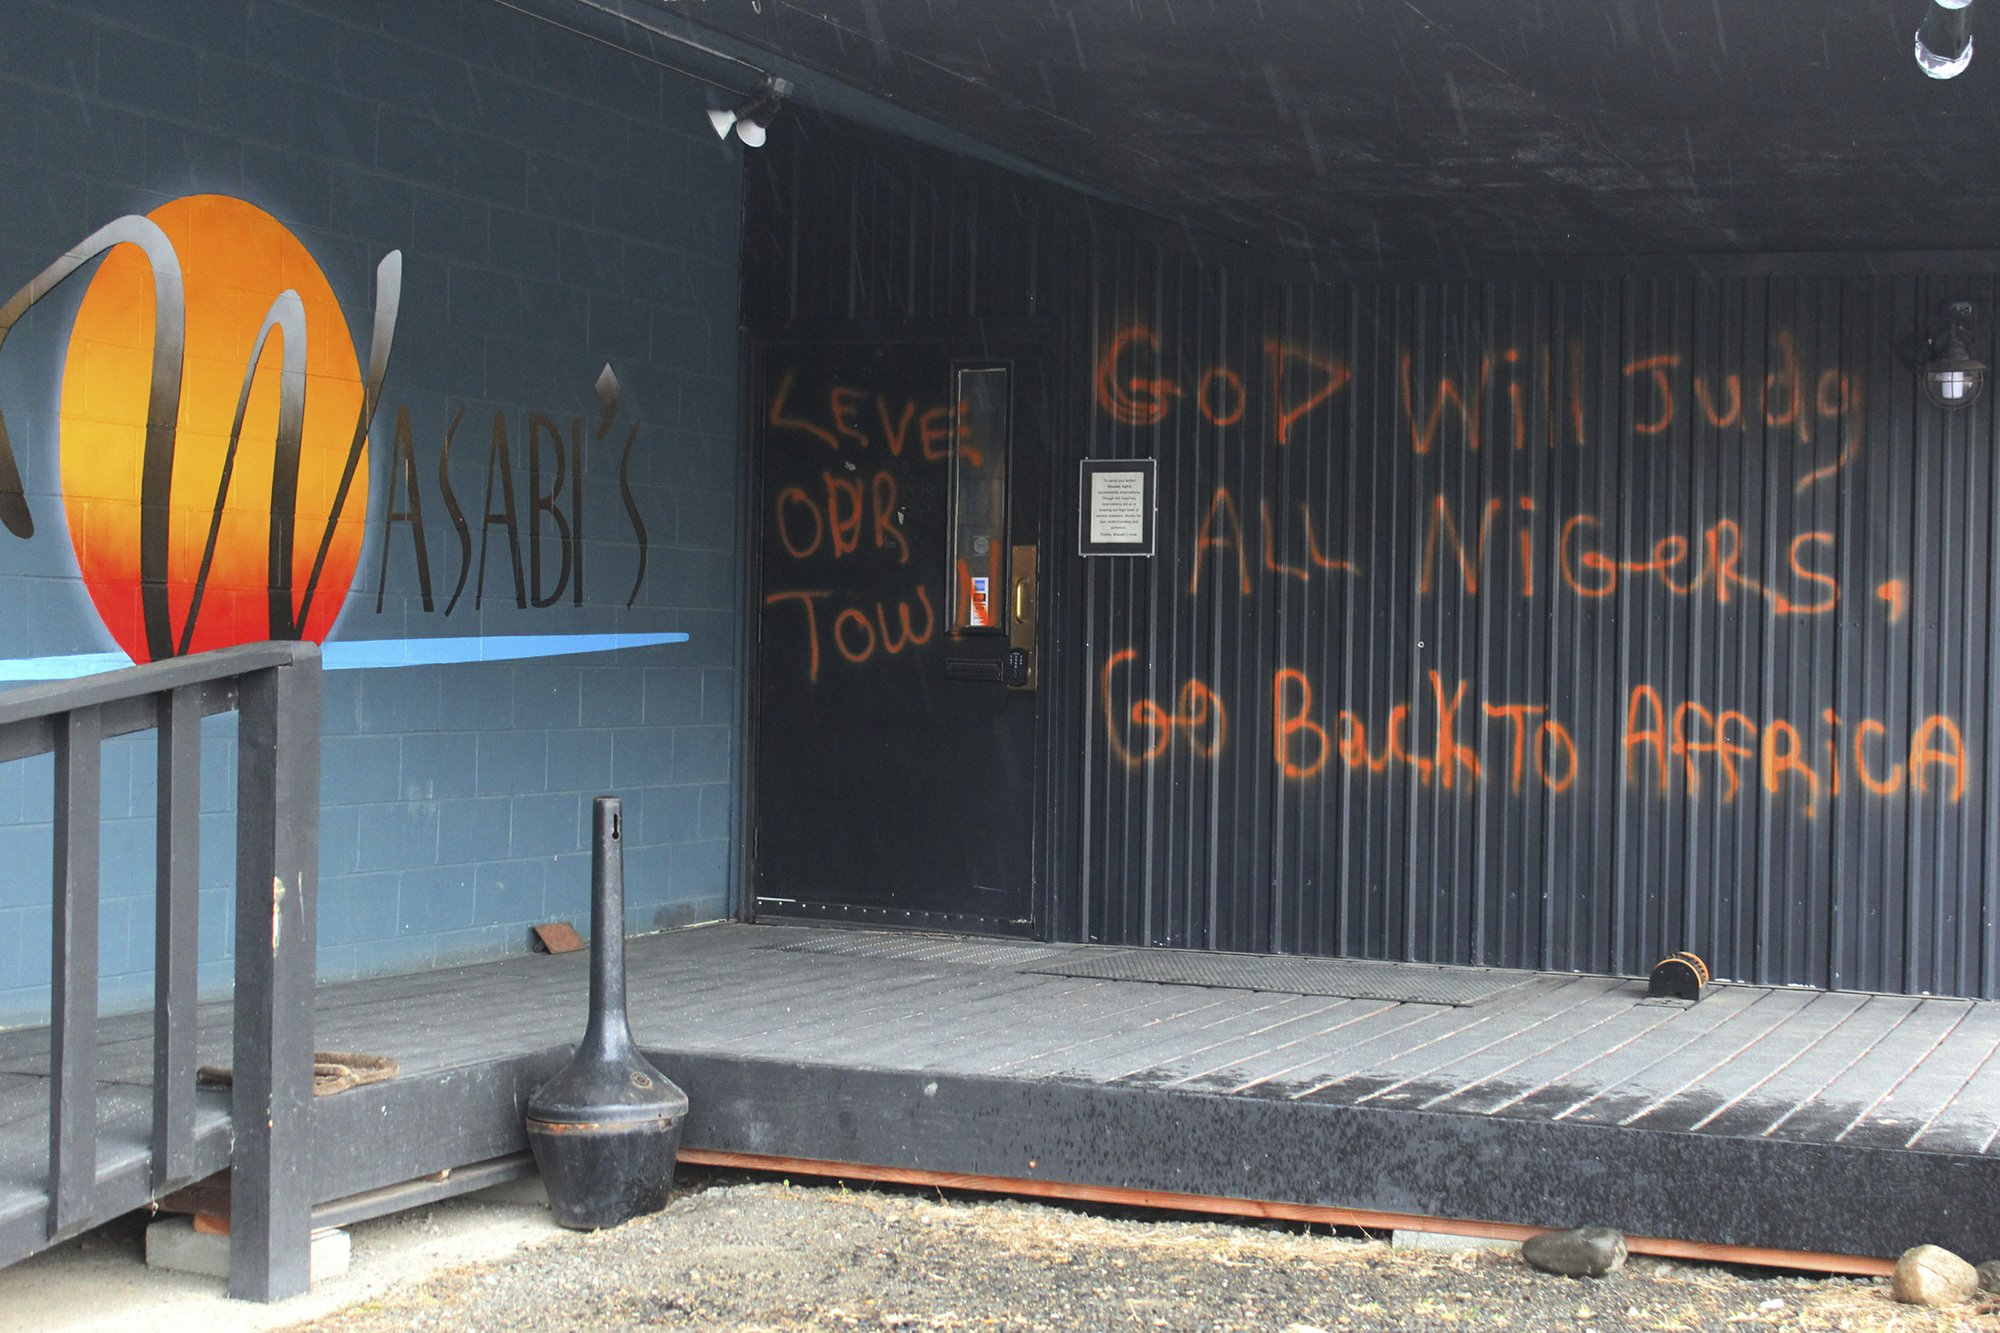 Alaska bistro defaced by racist graffiti, reference to Trump